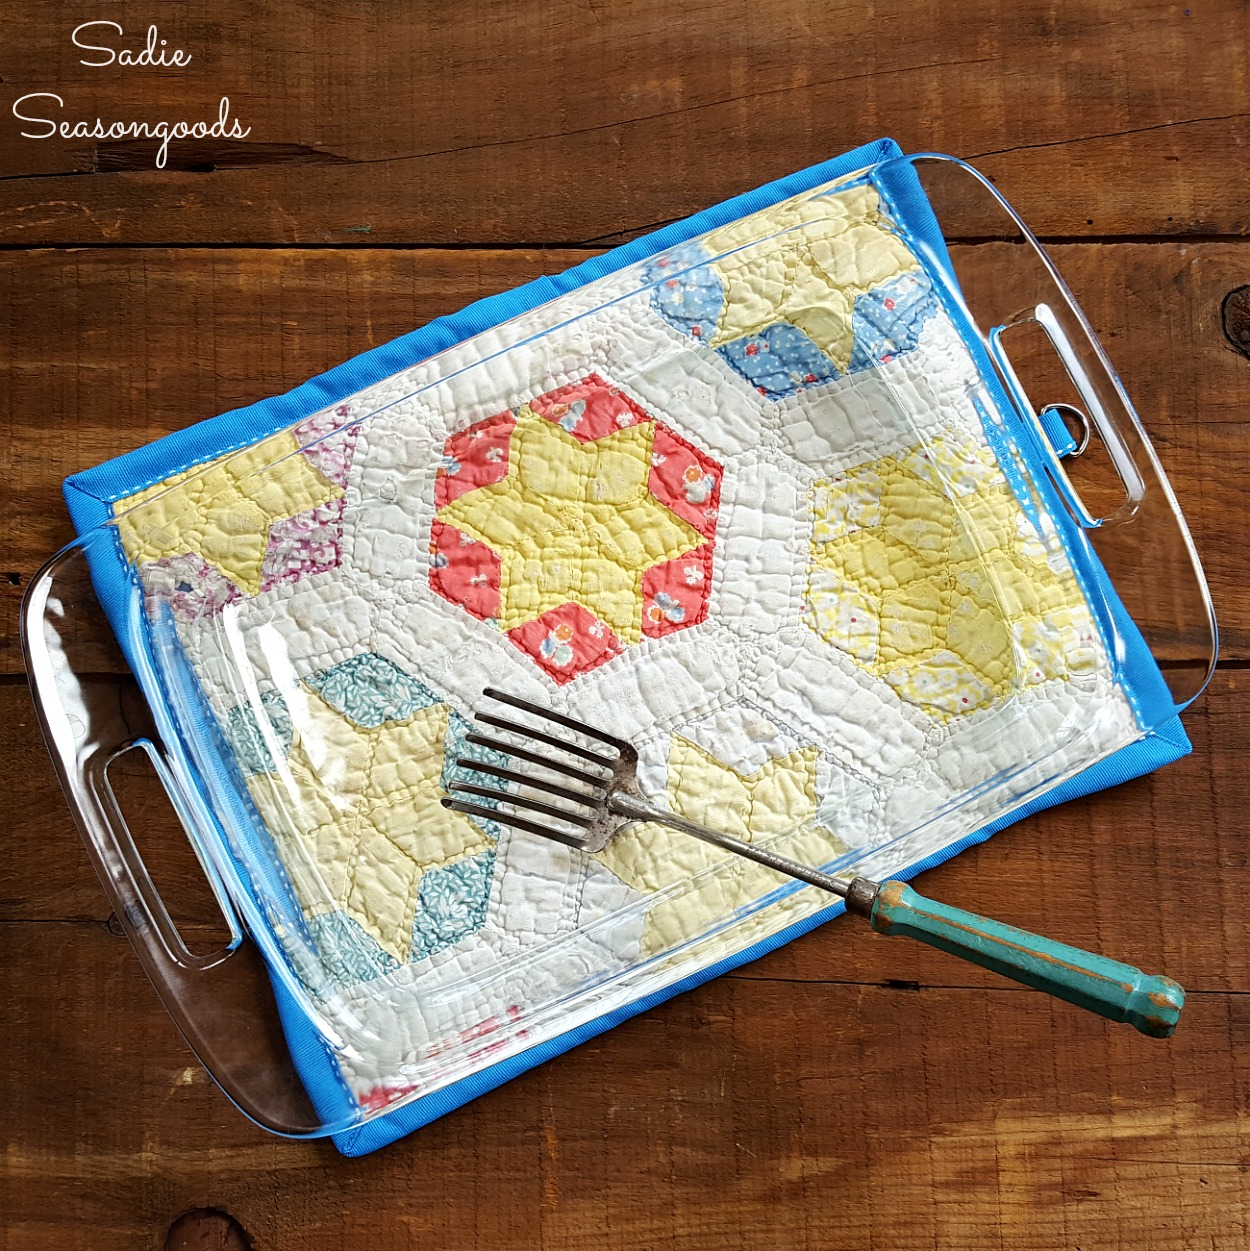 kitchen hot pads portable cabinets country quilts turned into a potholder pad for baking dish or made from